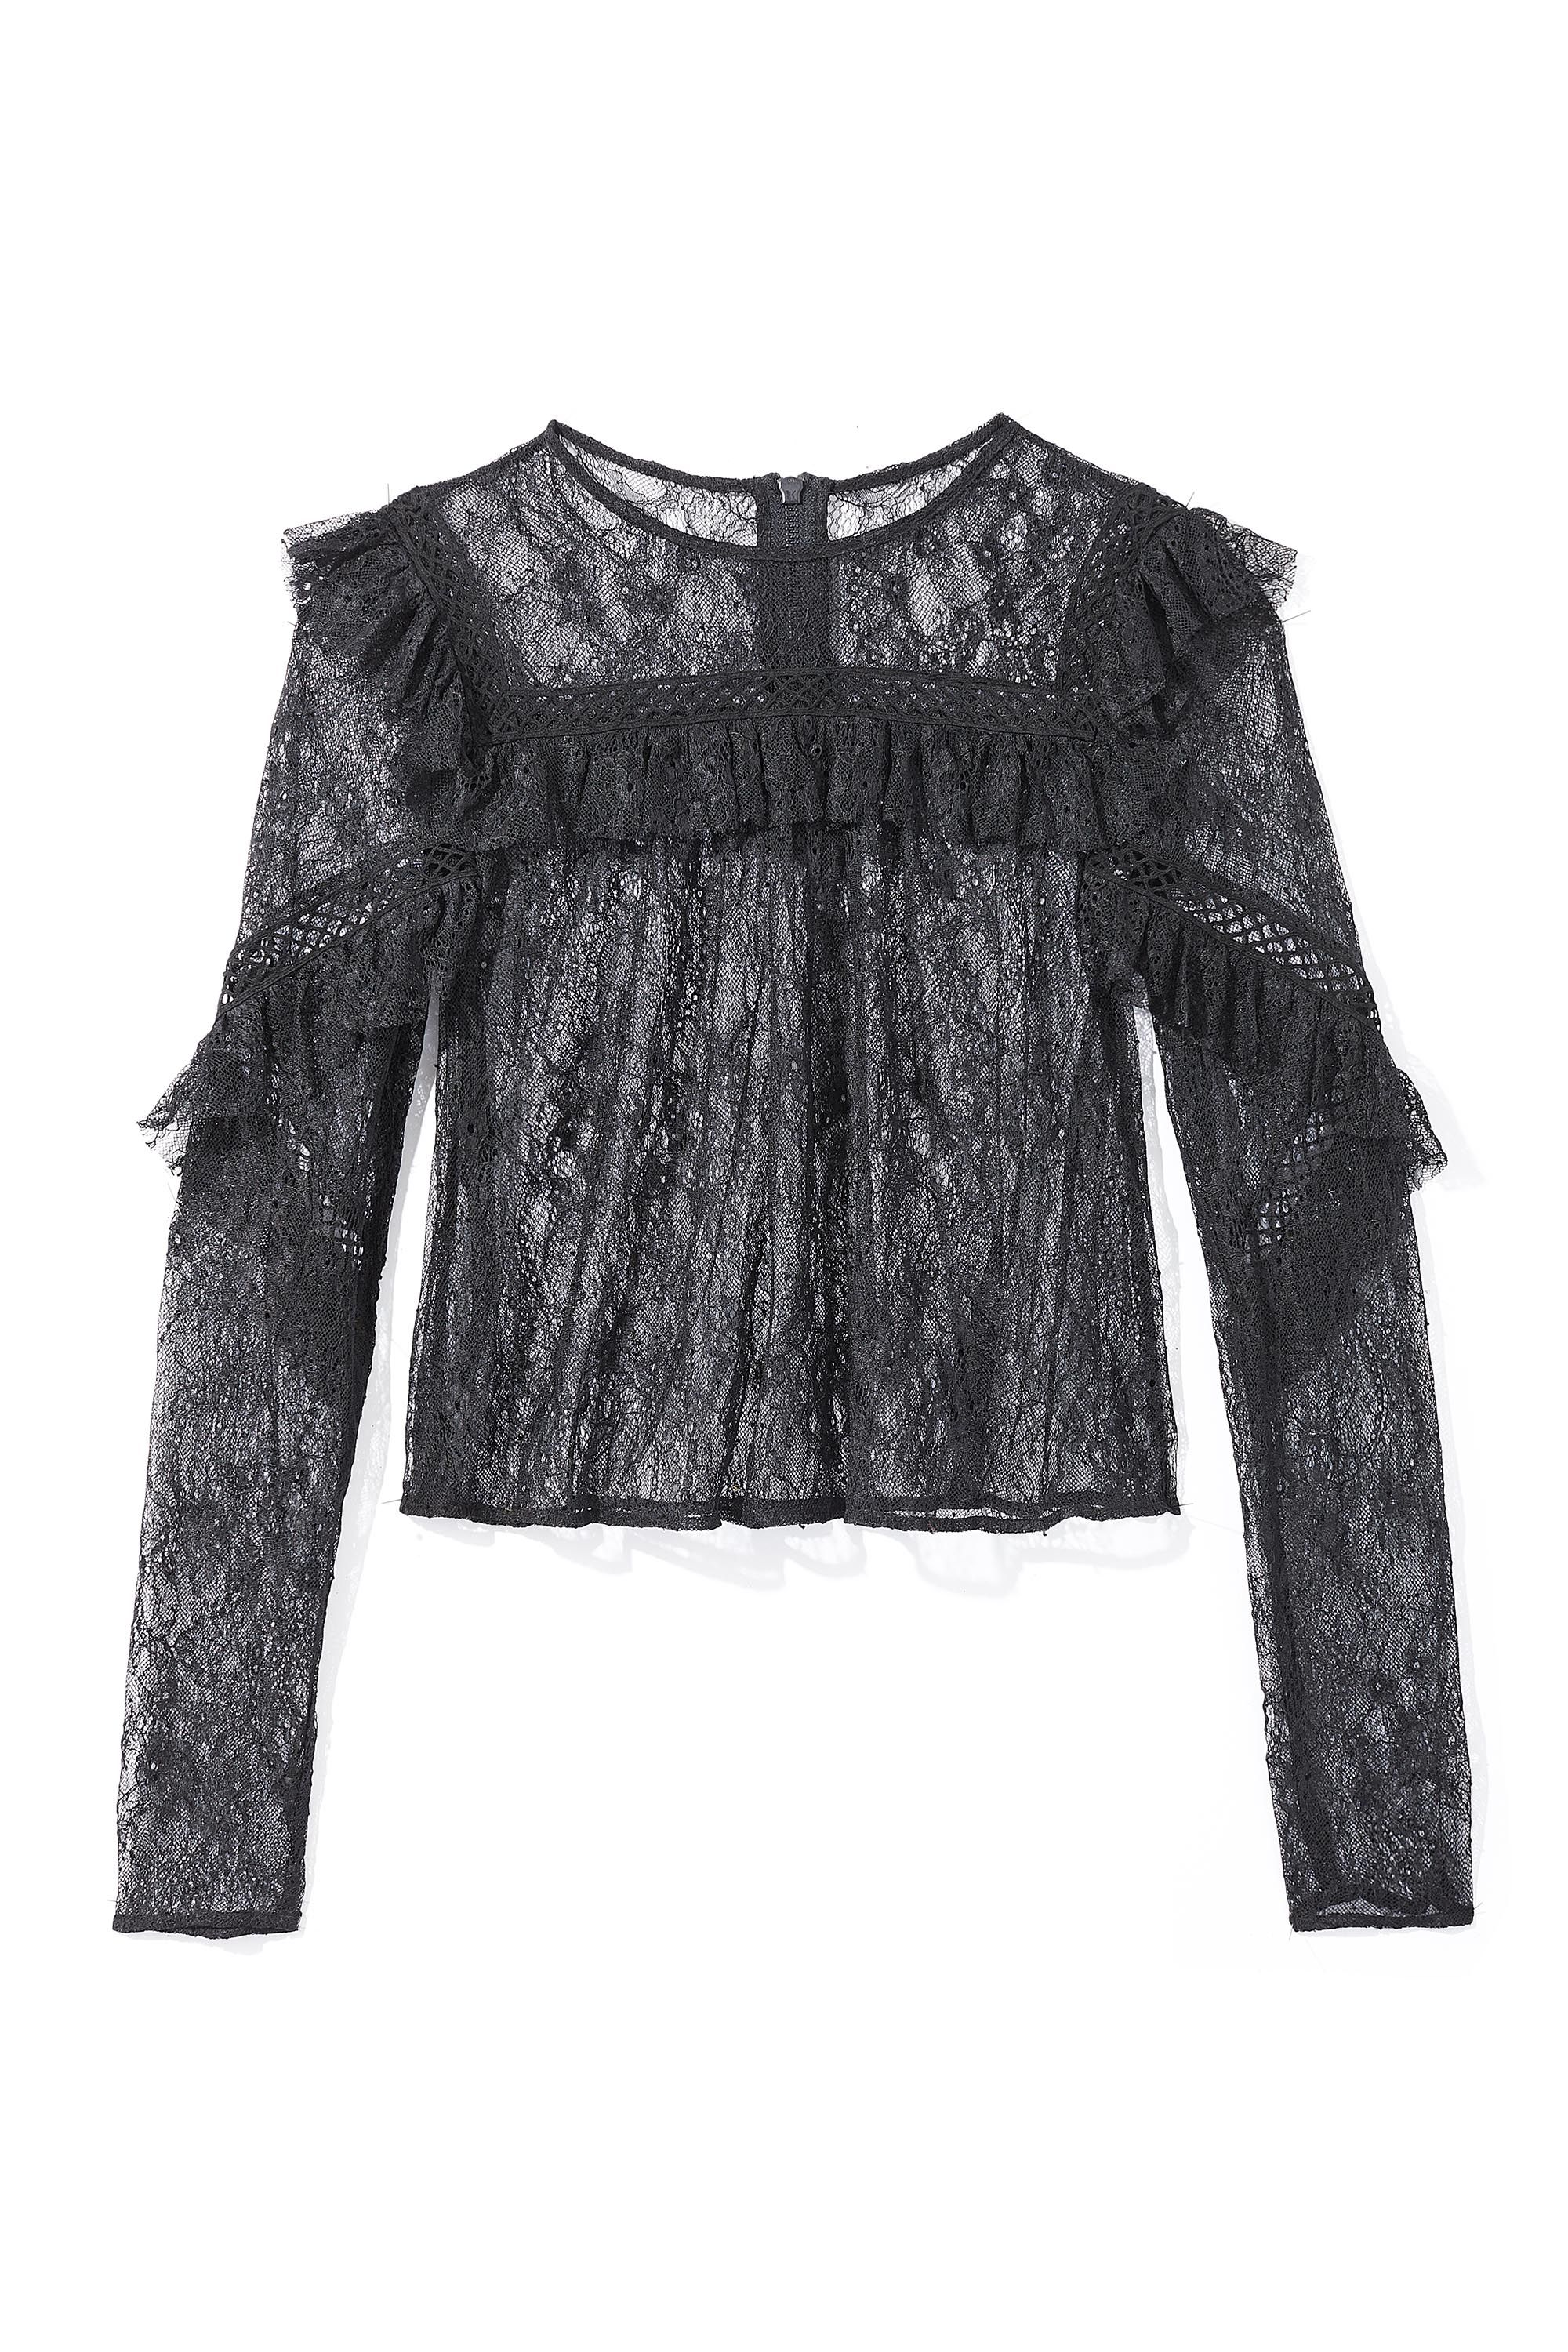 <p>Lace top, TOPSHOP, $68, at Topshop, NYC<em></em></p>